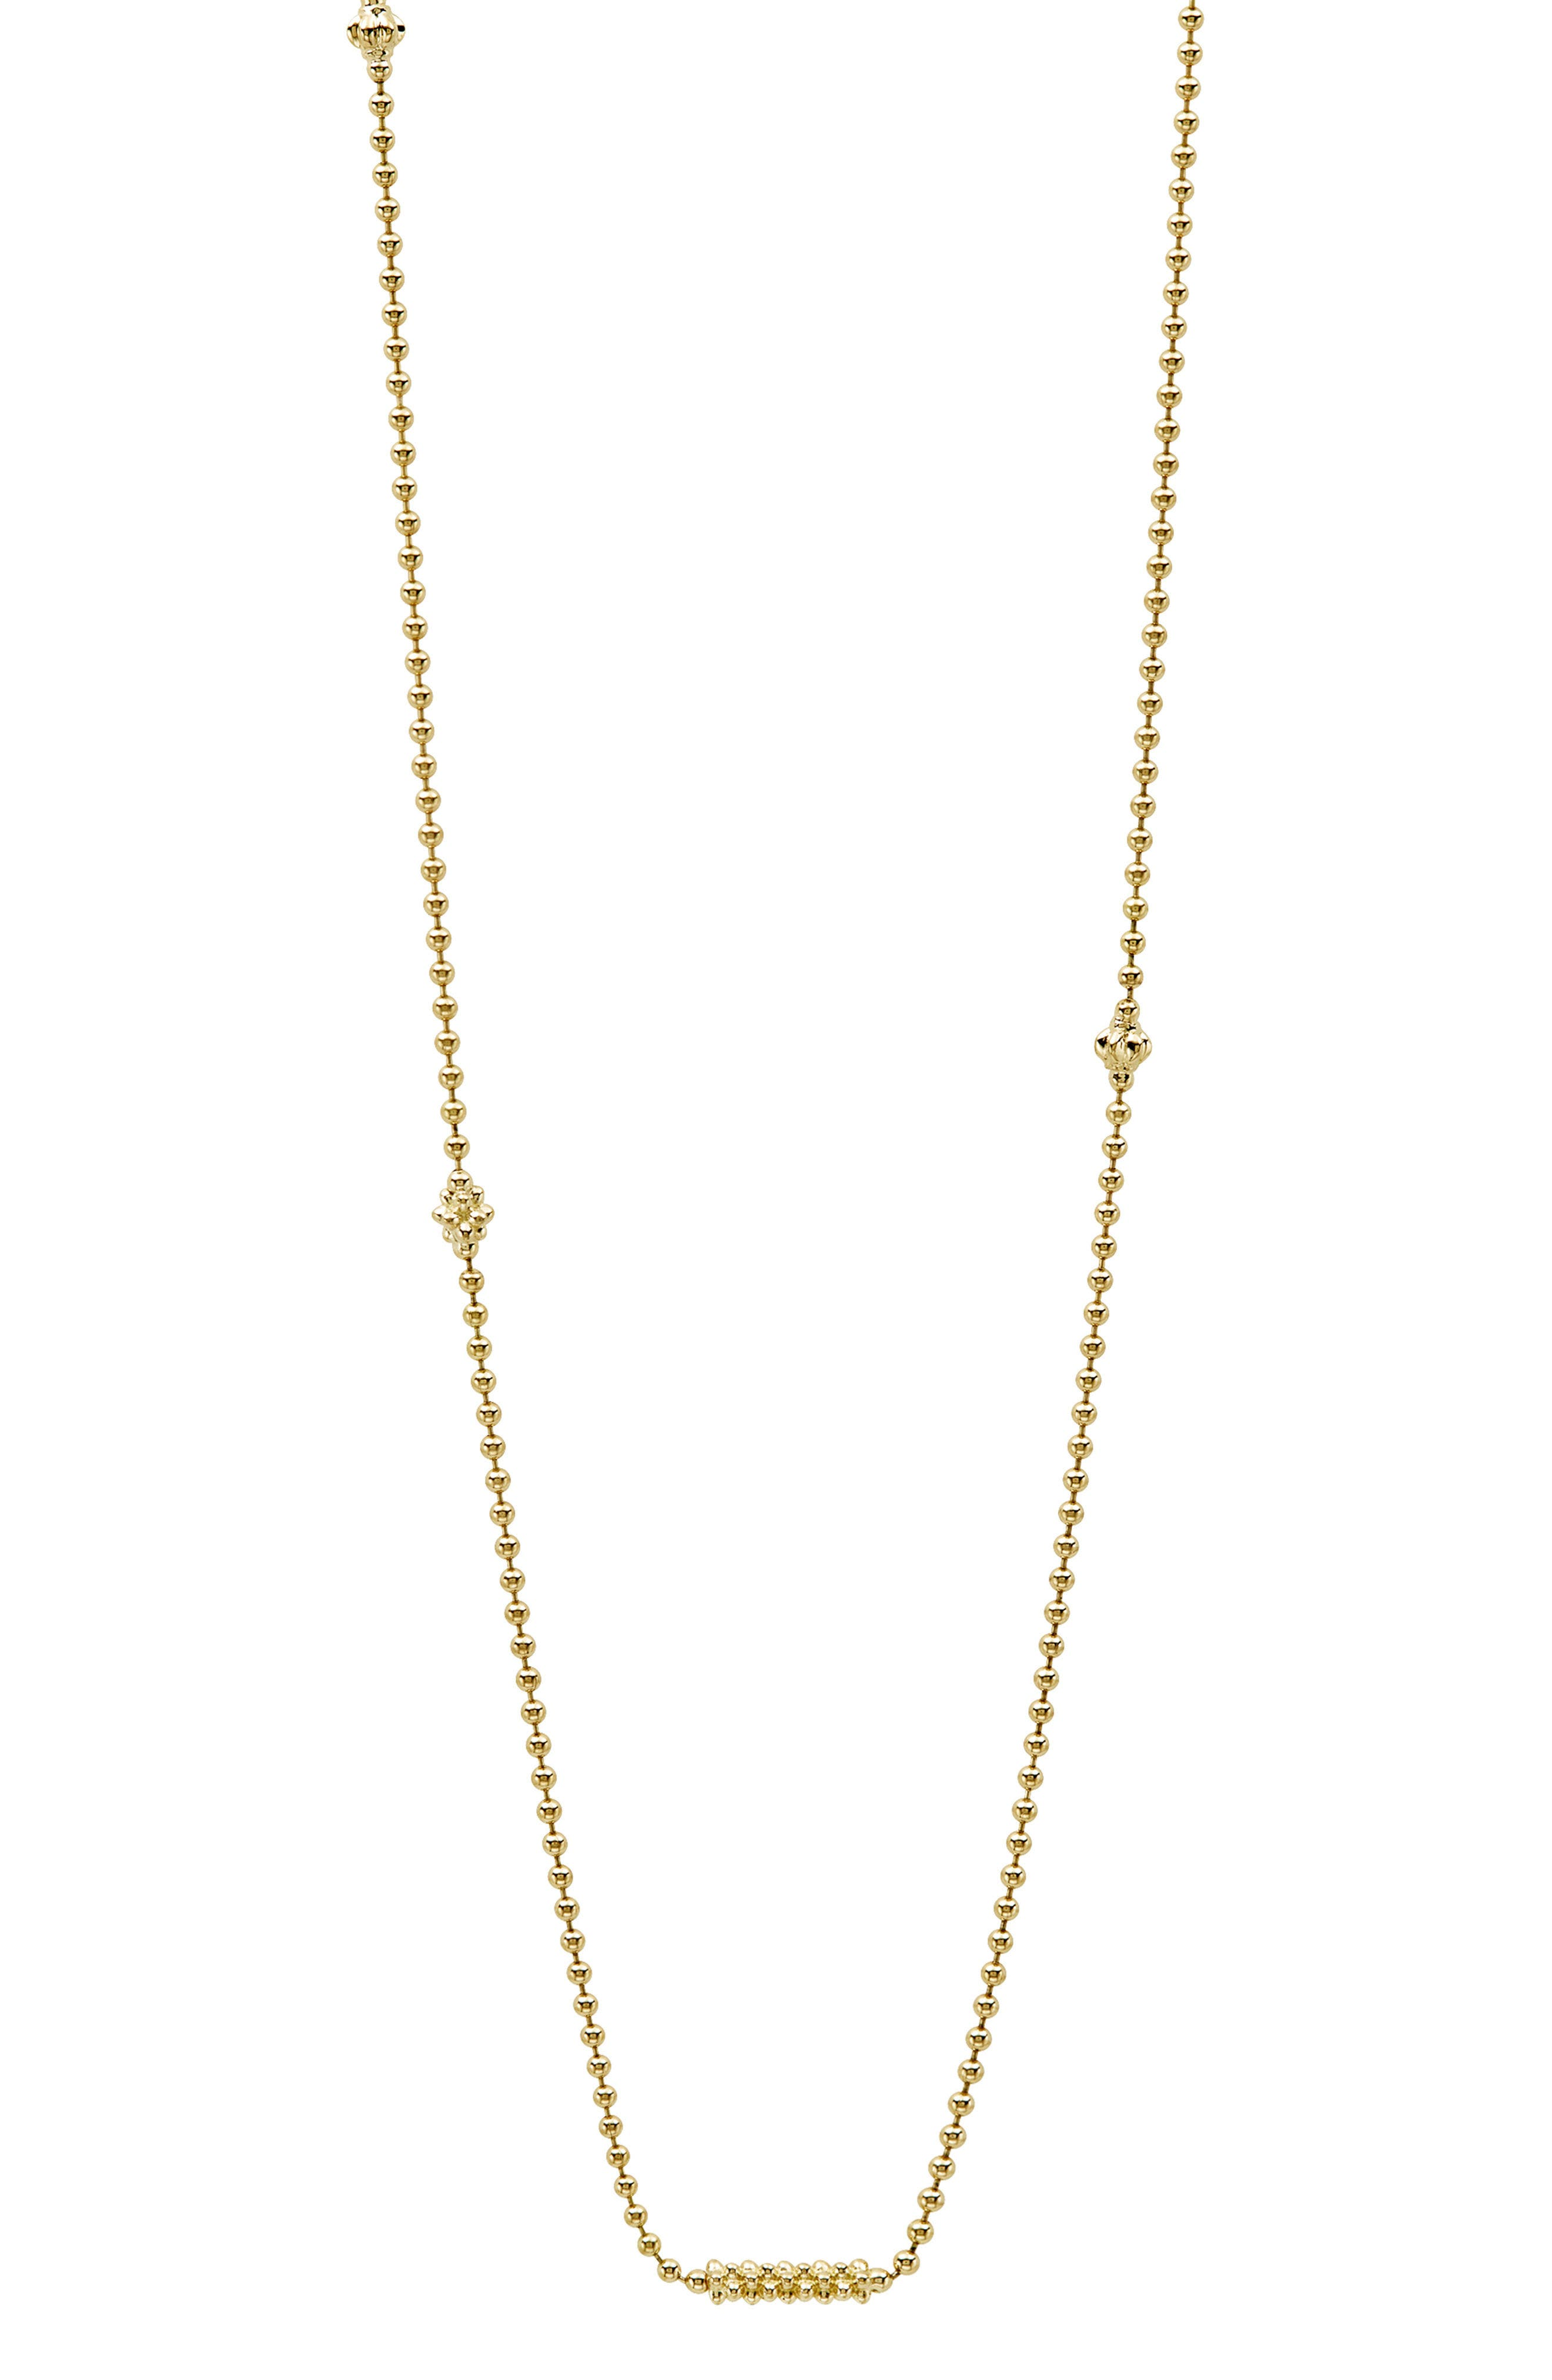 Caviar Bars & Cages Chain Necklace,                             Alternate thumbnail 2, color,                             GOLD